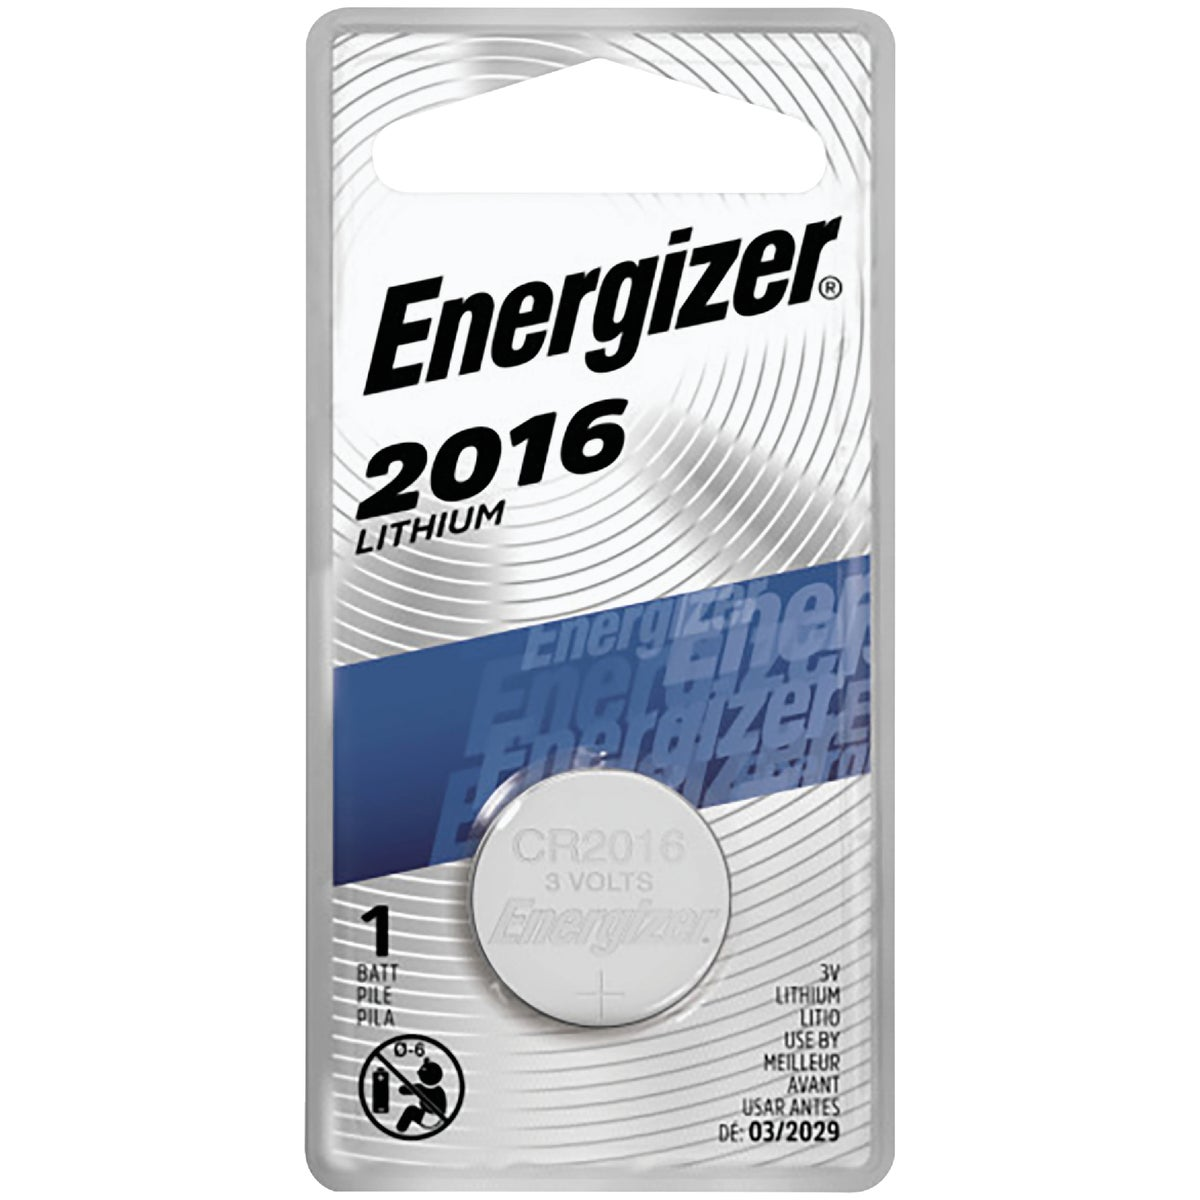 3V LITHIUM BATTERY - ECR2016BP by Energizer